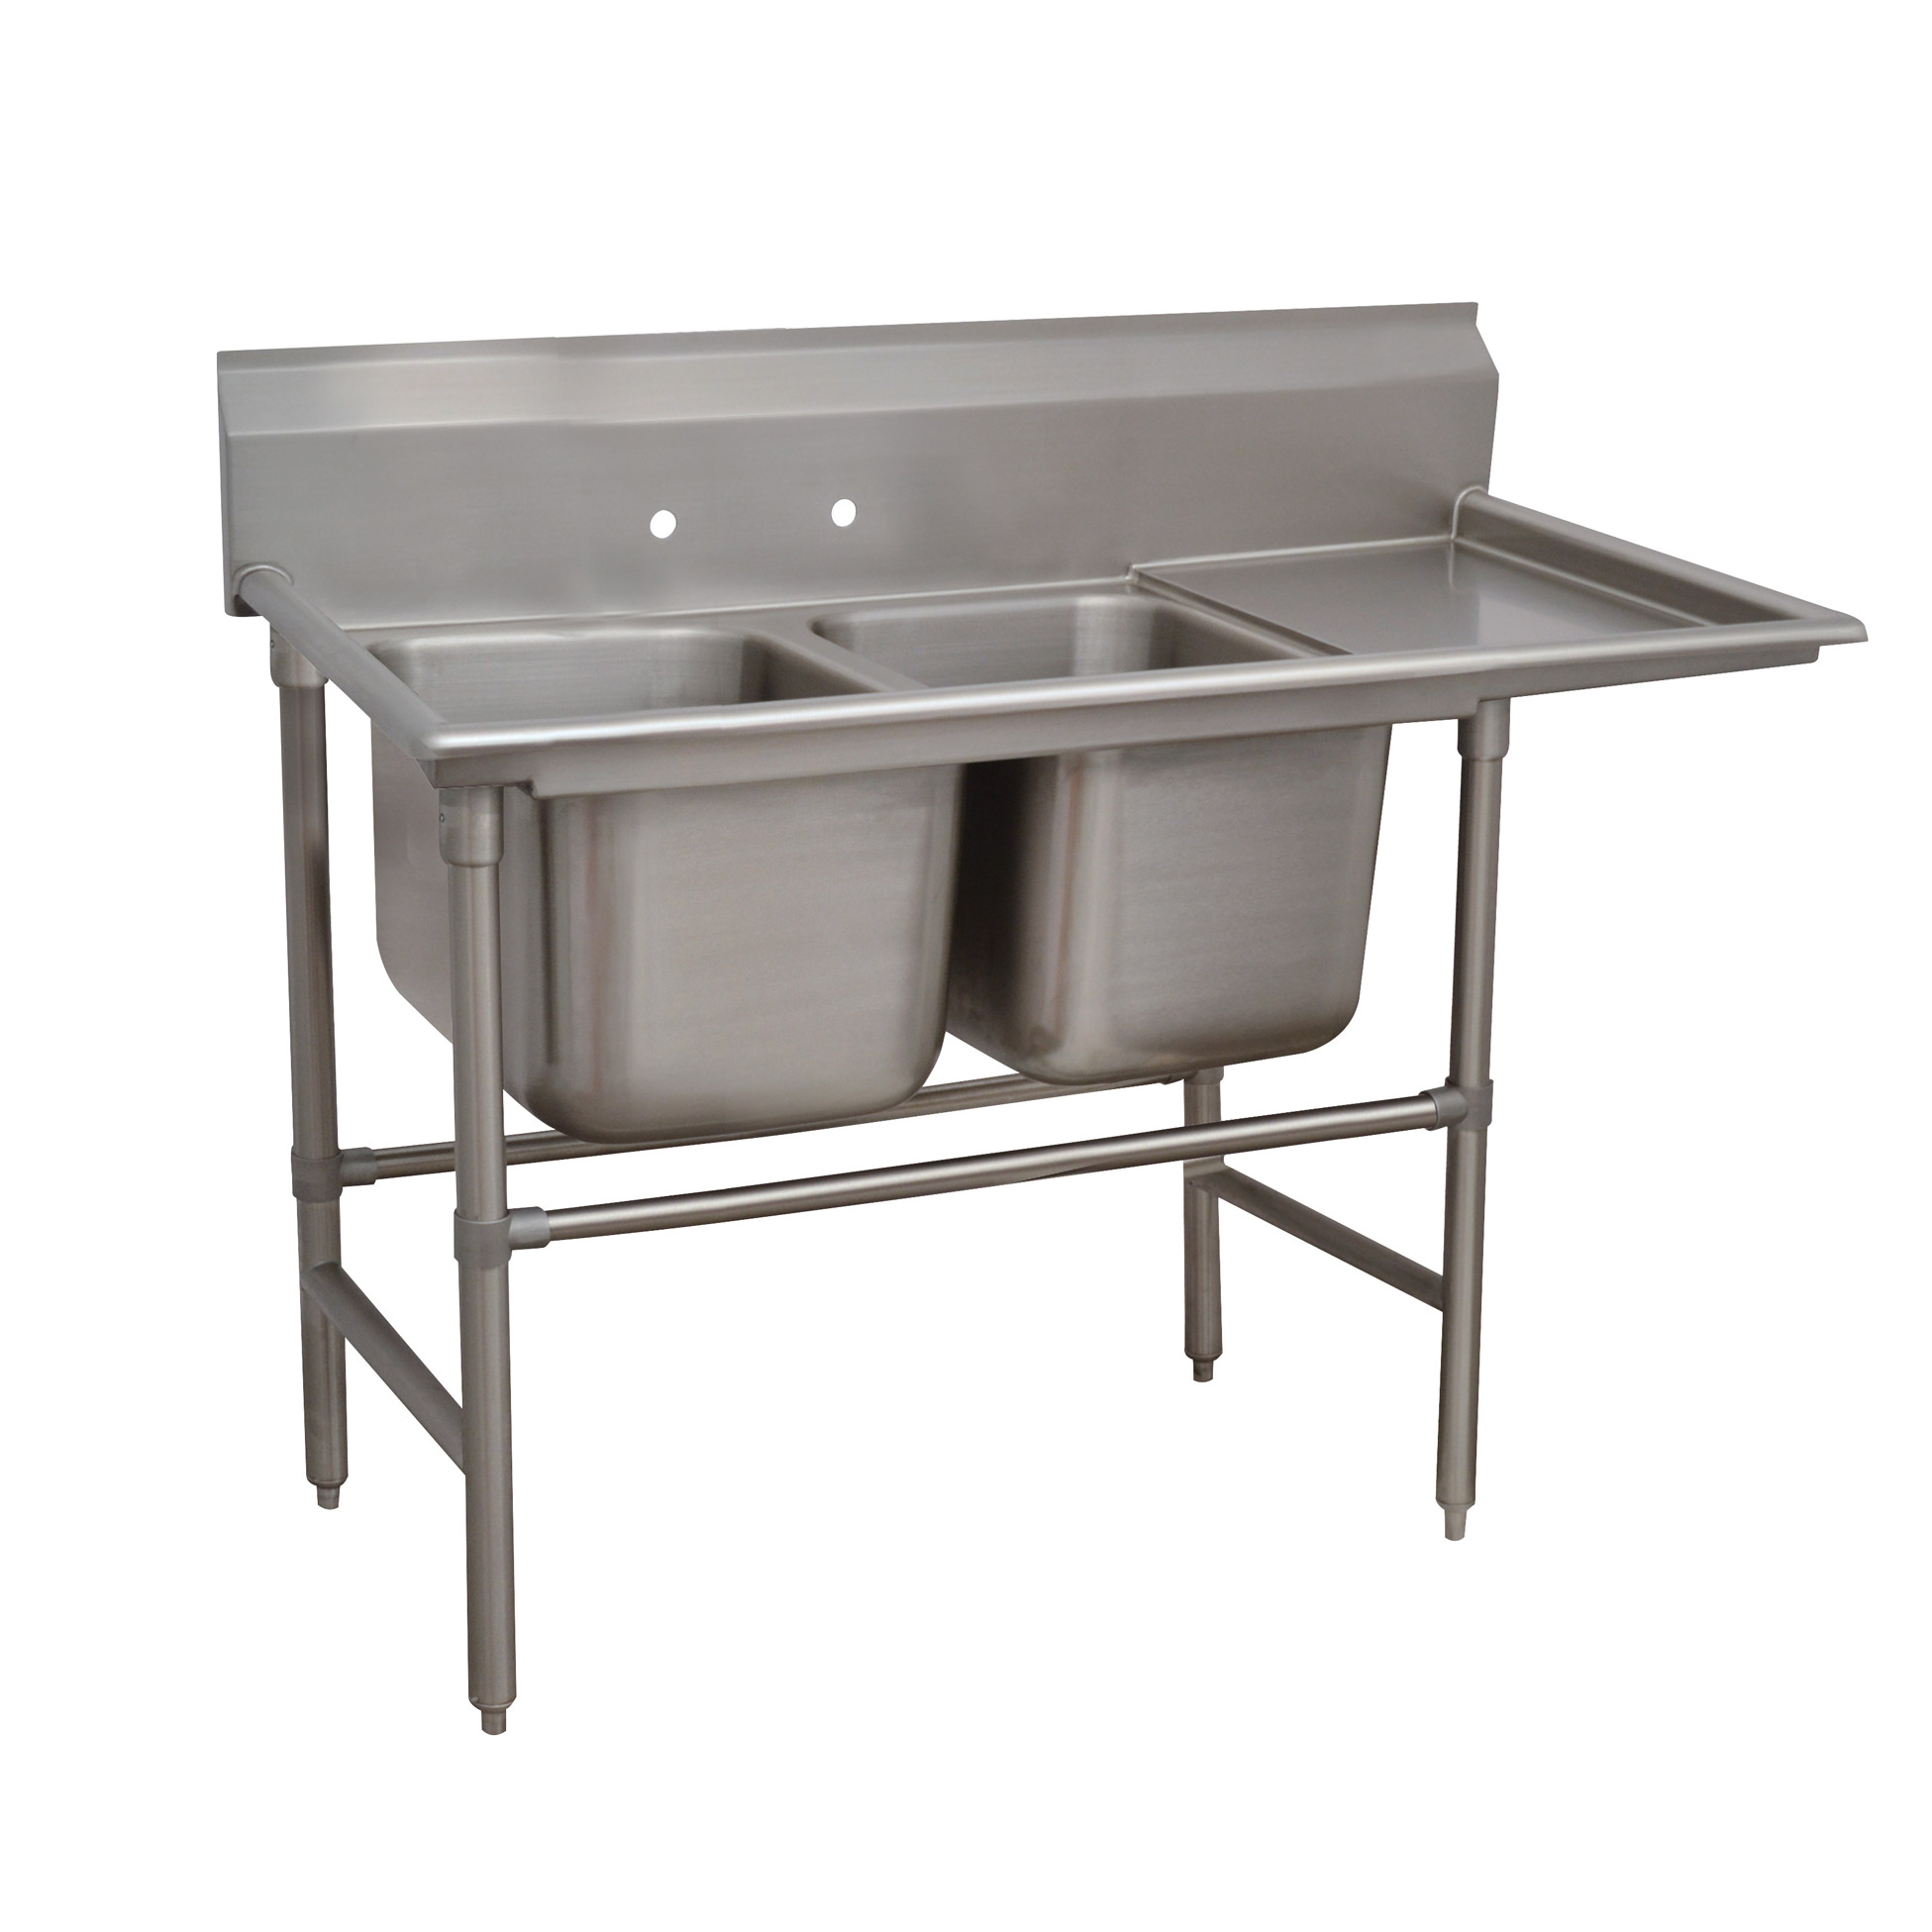 Advance Tabco 94-22-40-18R sink, (2) two compartment